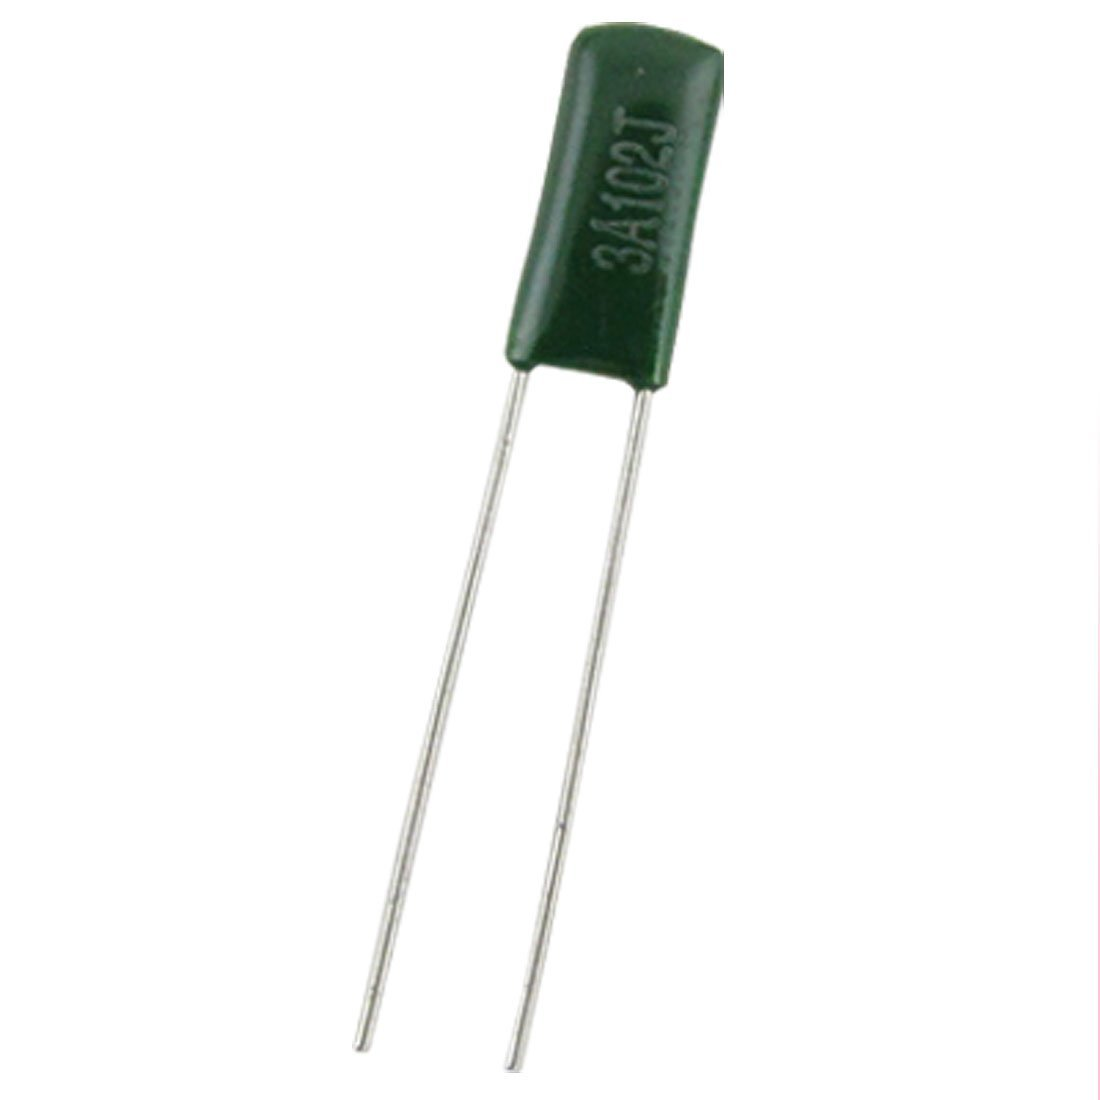 Aexit 1000pF 100V Passive Components 5% Mylar Polyester Film Capacitors(Bag Capacitors of 50)